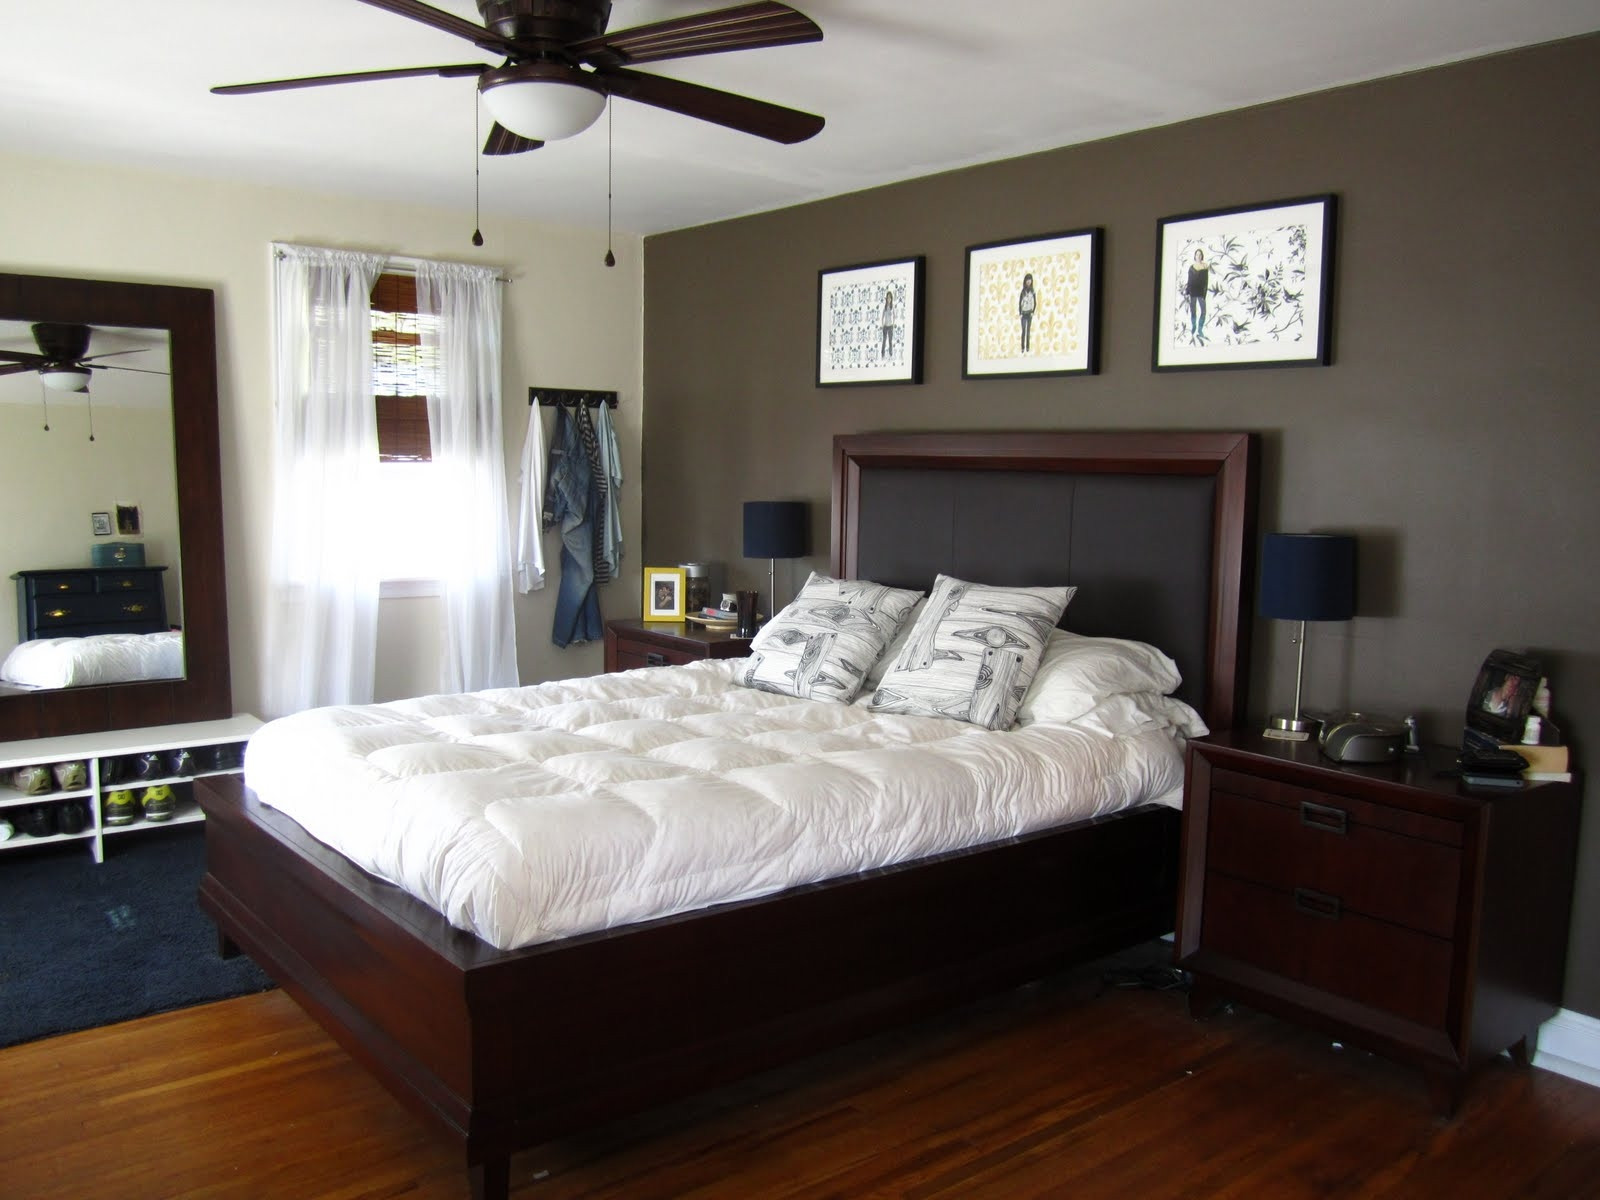 Best ideas about Bedroom Accent Wall Ideas . Save or Pin Bedroom Wallpaper Accent Wall 8 Decor Ideas Now.